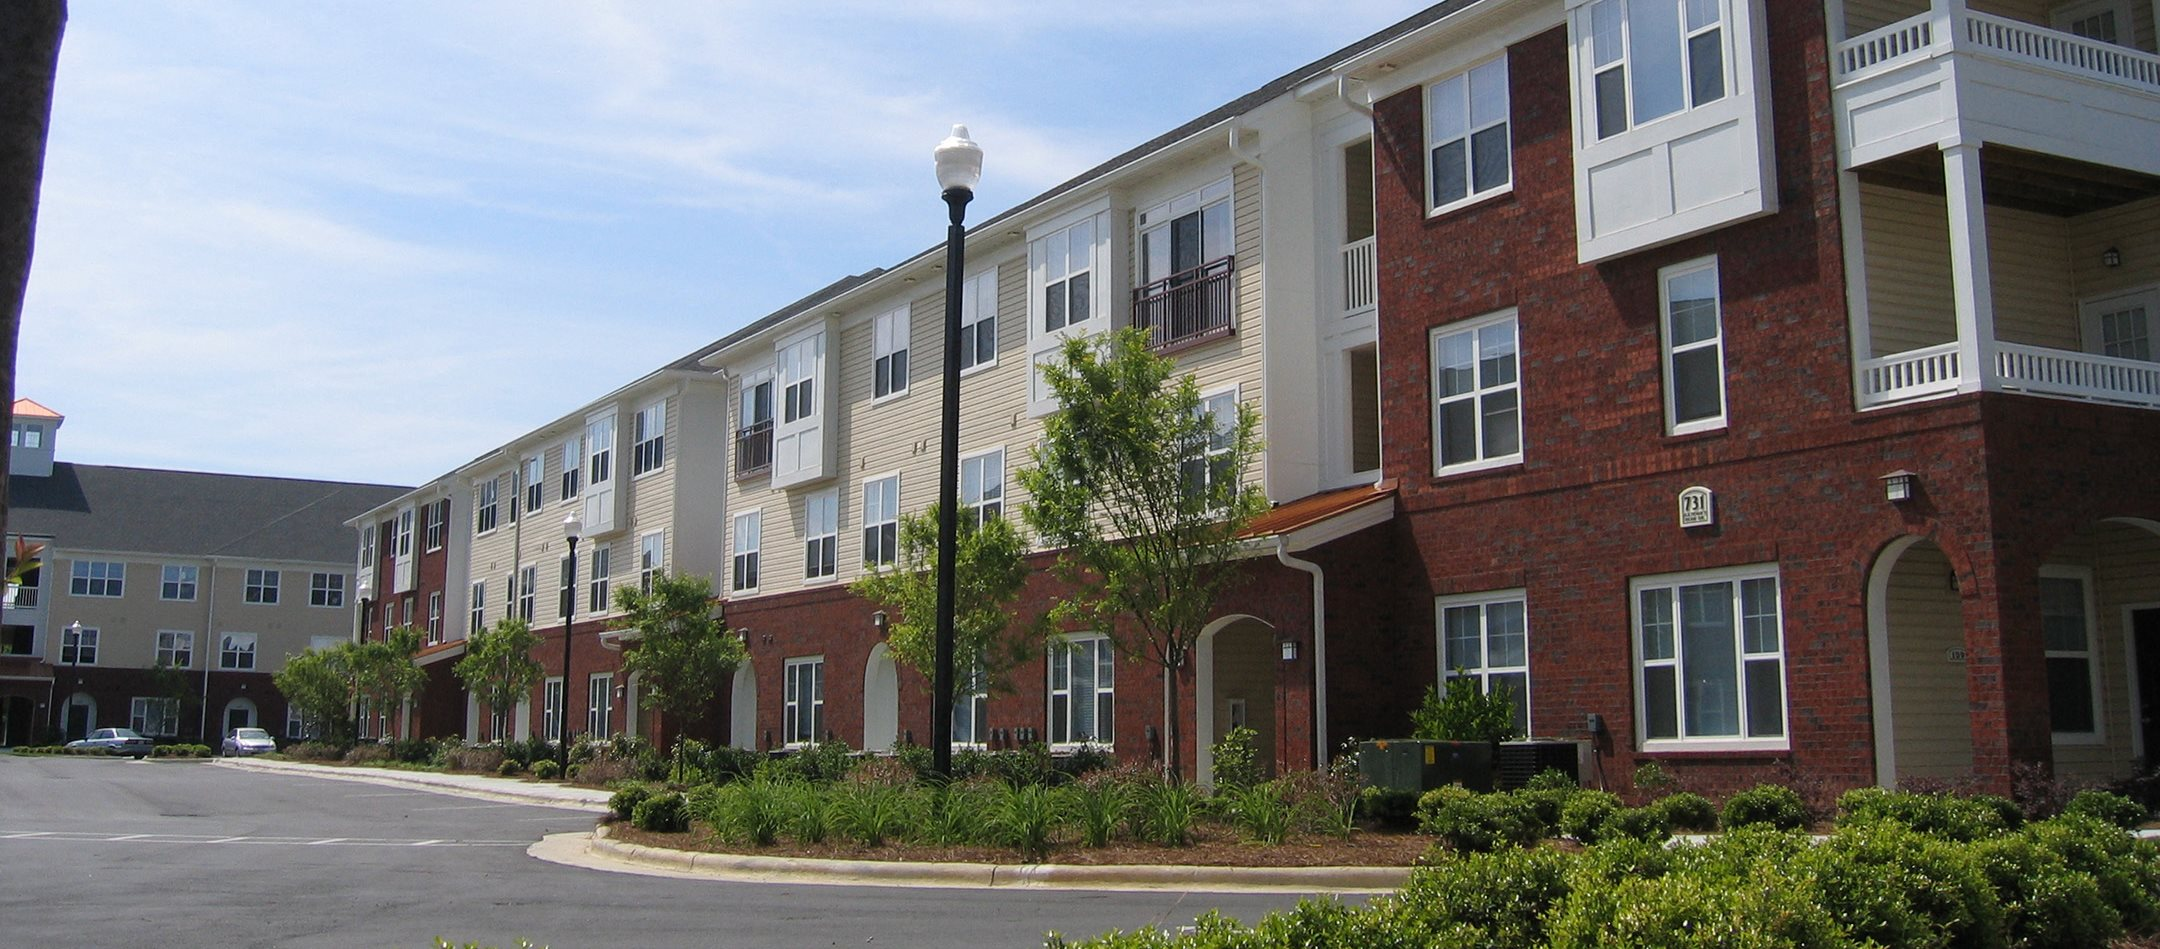 Wondrous Gateway Park Apartments In Raleigh Nc Home Interior And Landscaping Ferensignezvosmurscom